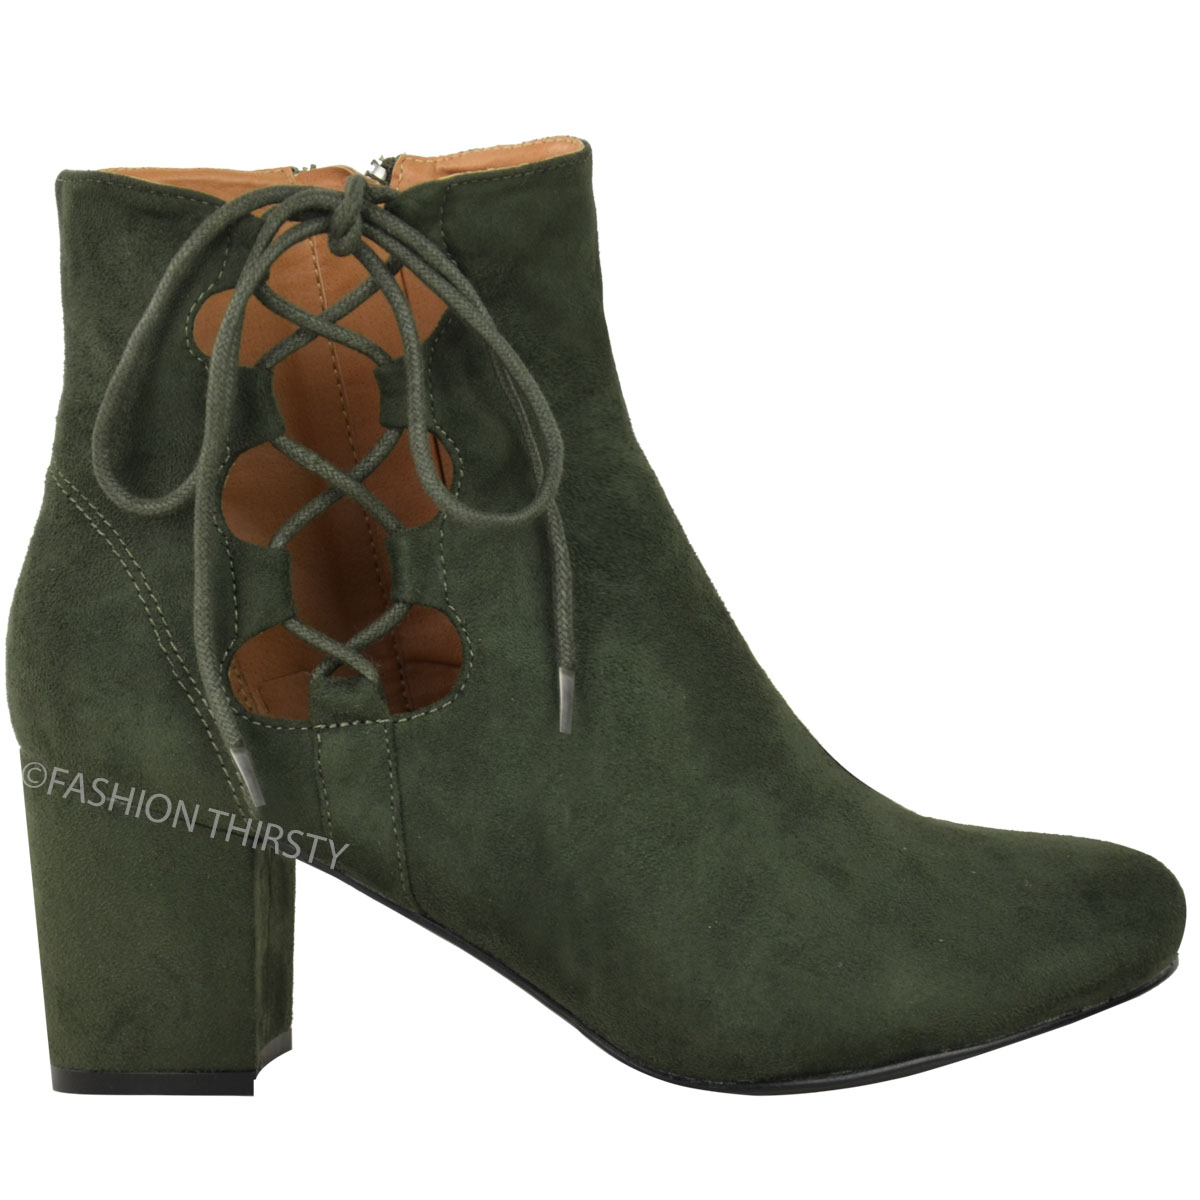 thumbnail 14 - WOMENS-LADIES-LOW-BLOCK-HEEL-CHELSEA-ANKLE-BOOTS-CUT-OUT-LACE-UP-SHOES-NEW-SIZE